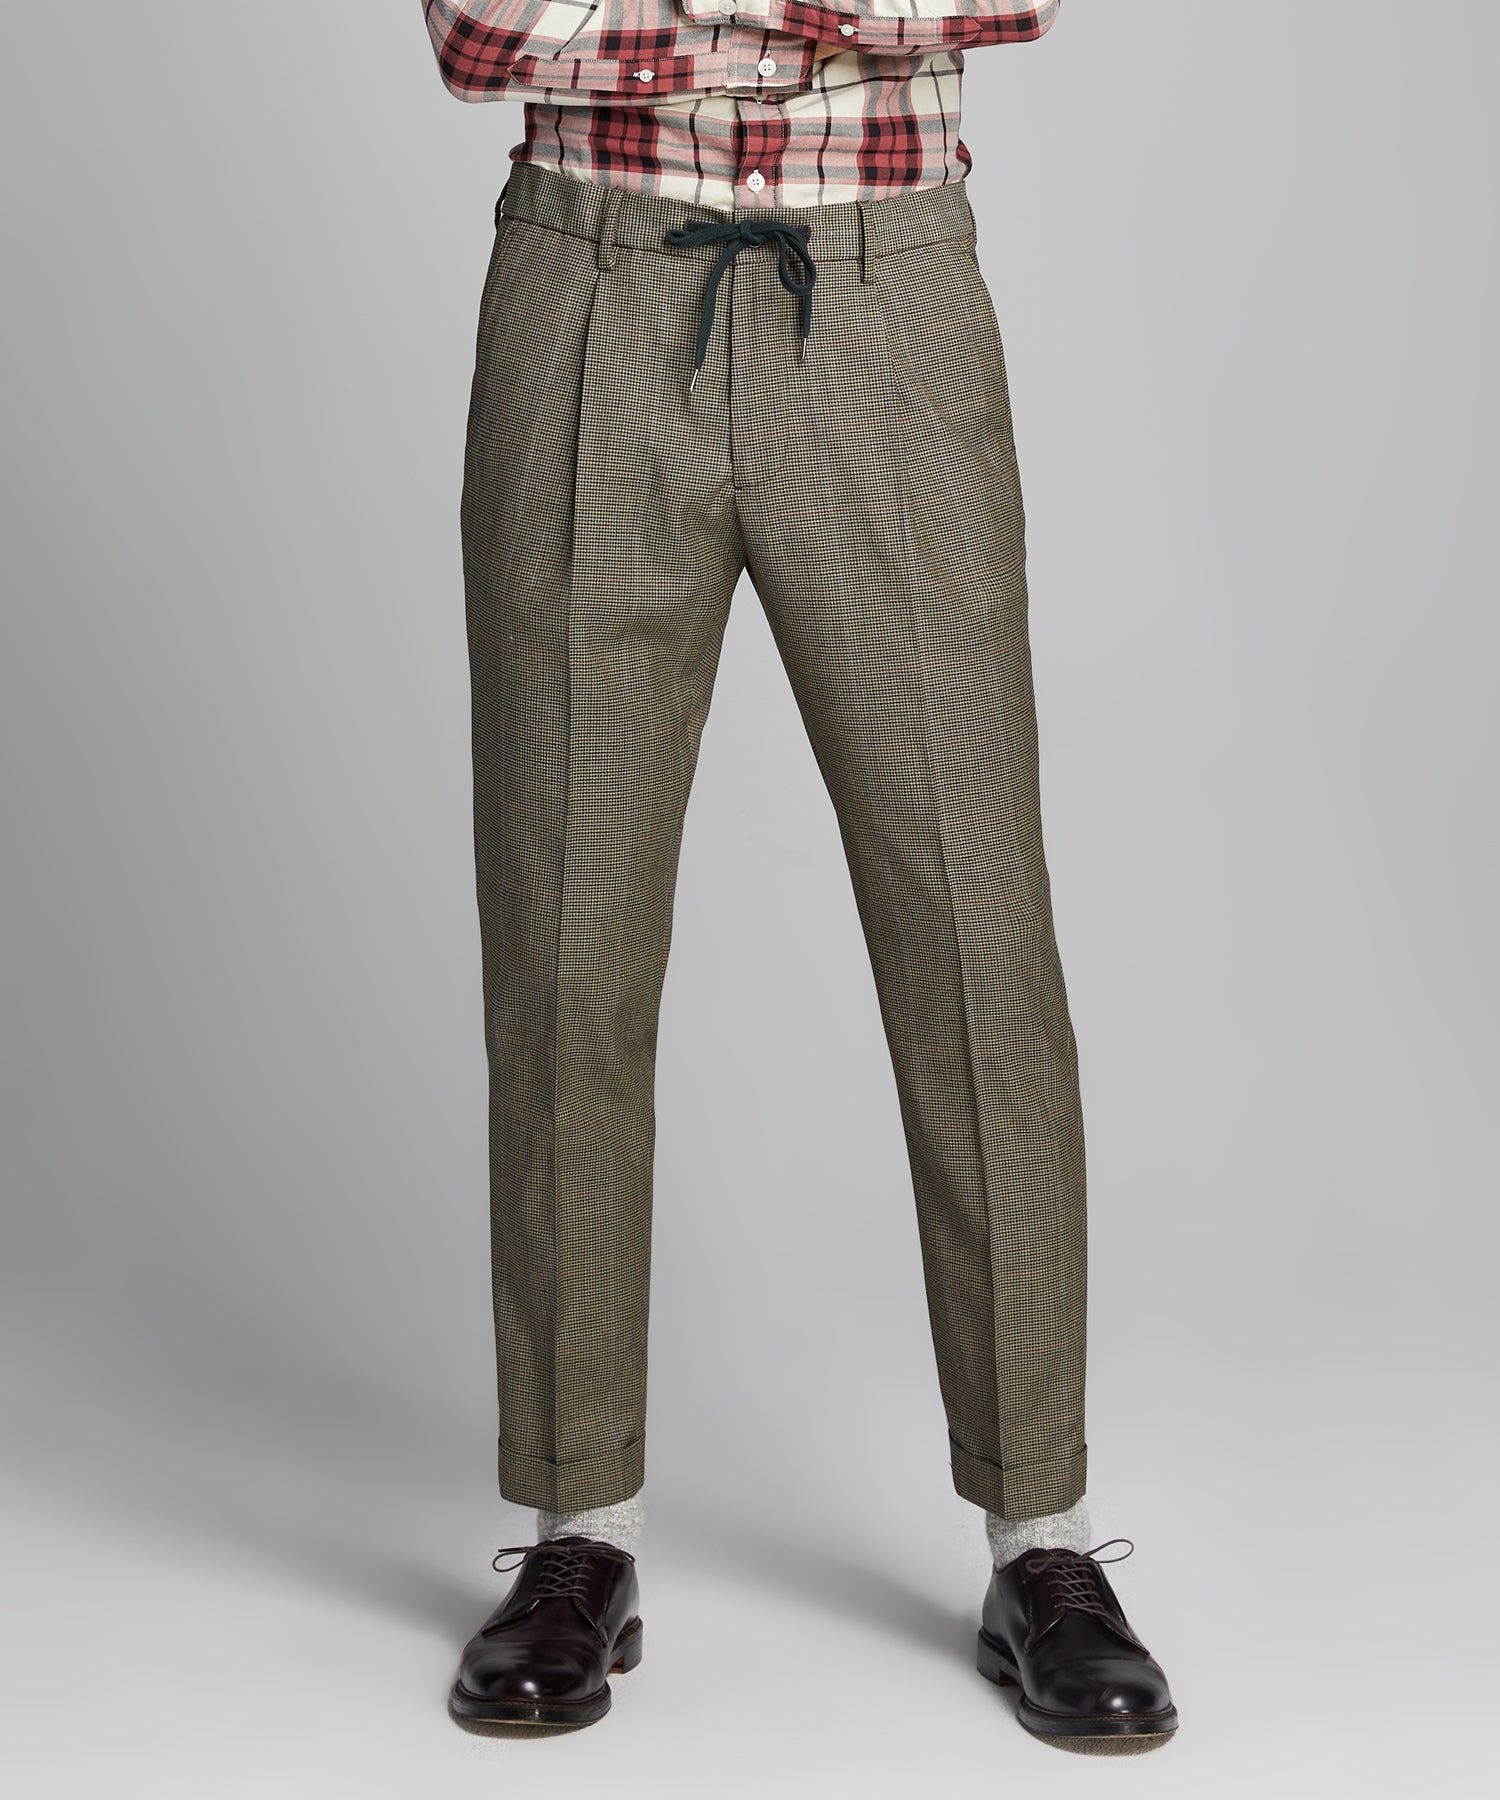 Italian Stretch Wool Drawstring Trouser in Brown Plaid